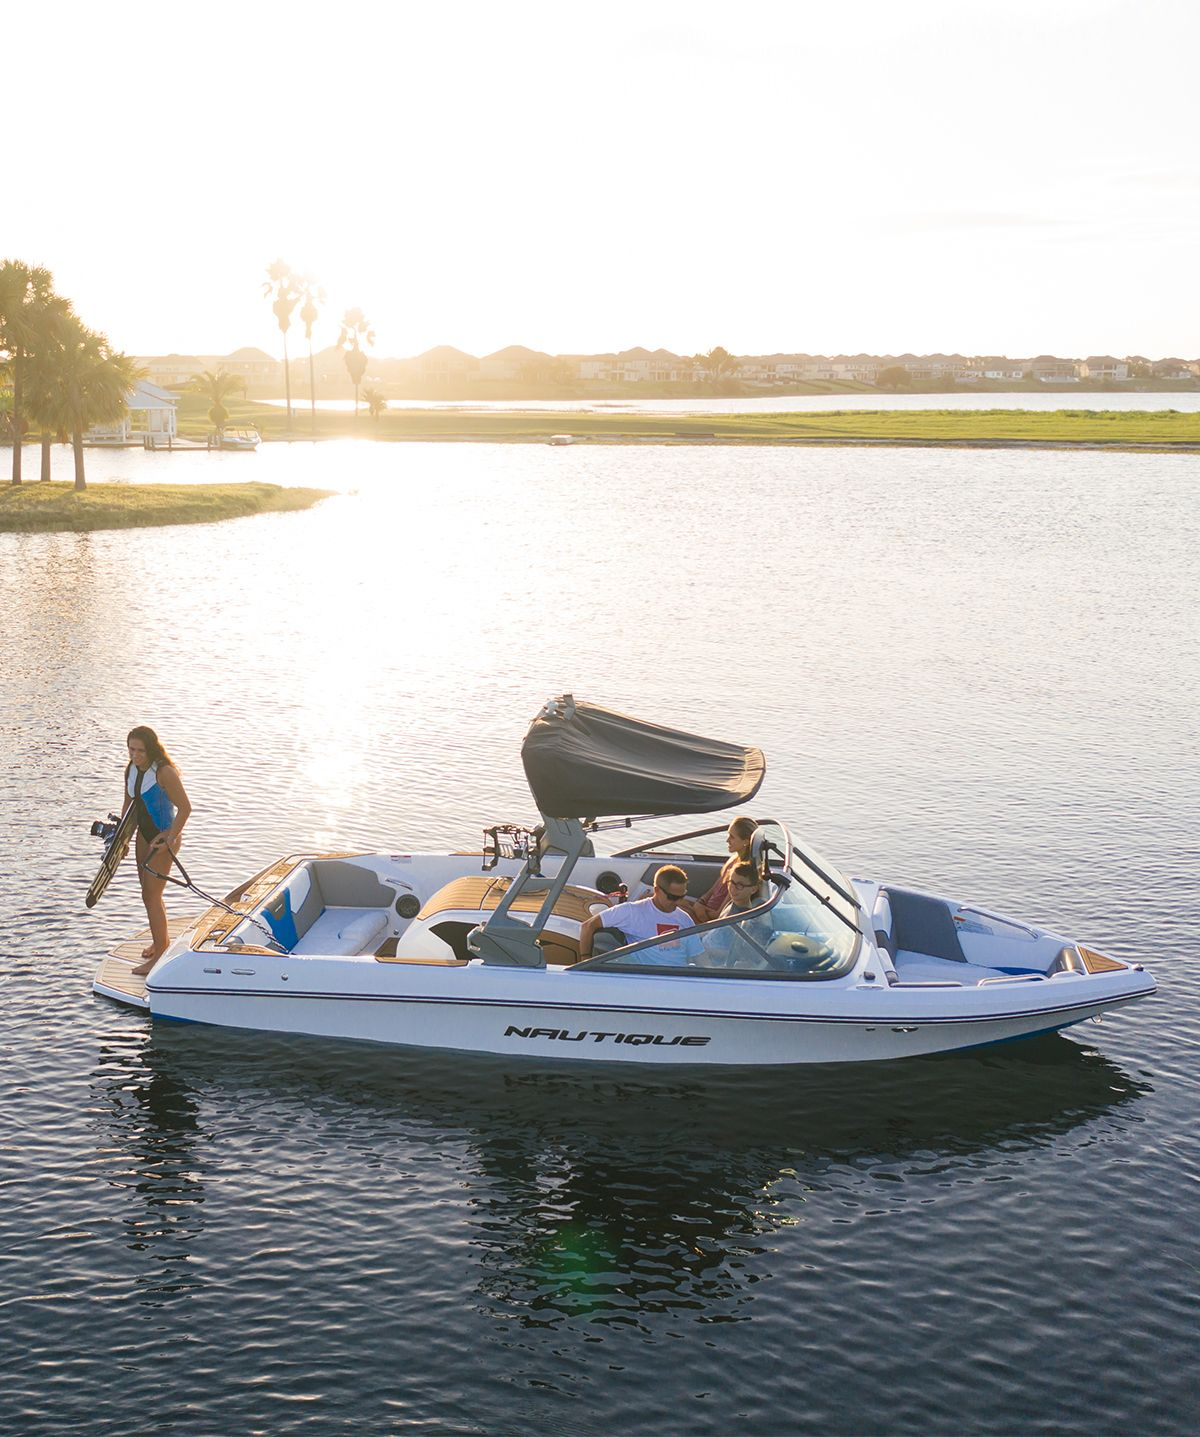 The New 2019 Nautique 200 Boat Water Skiing Ski Boats